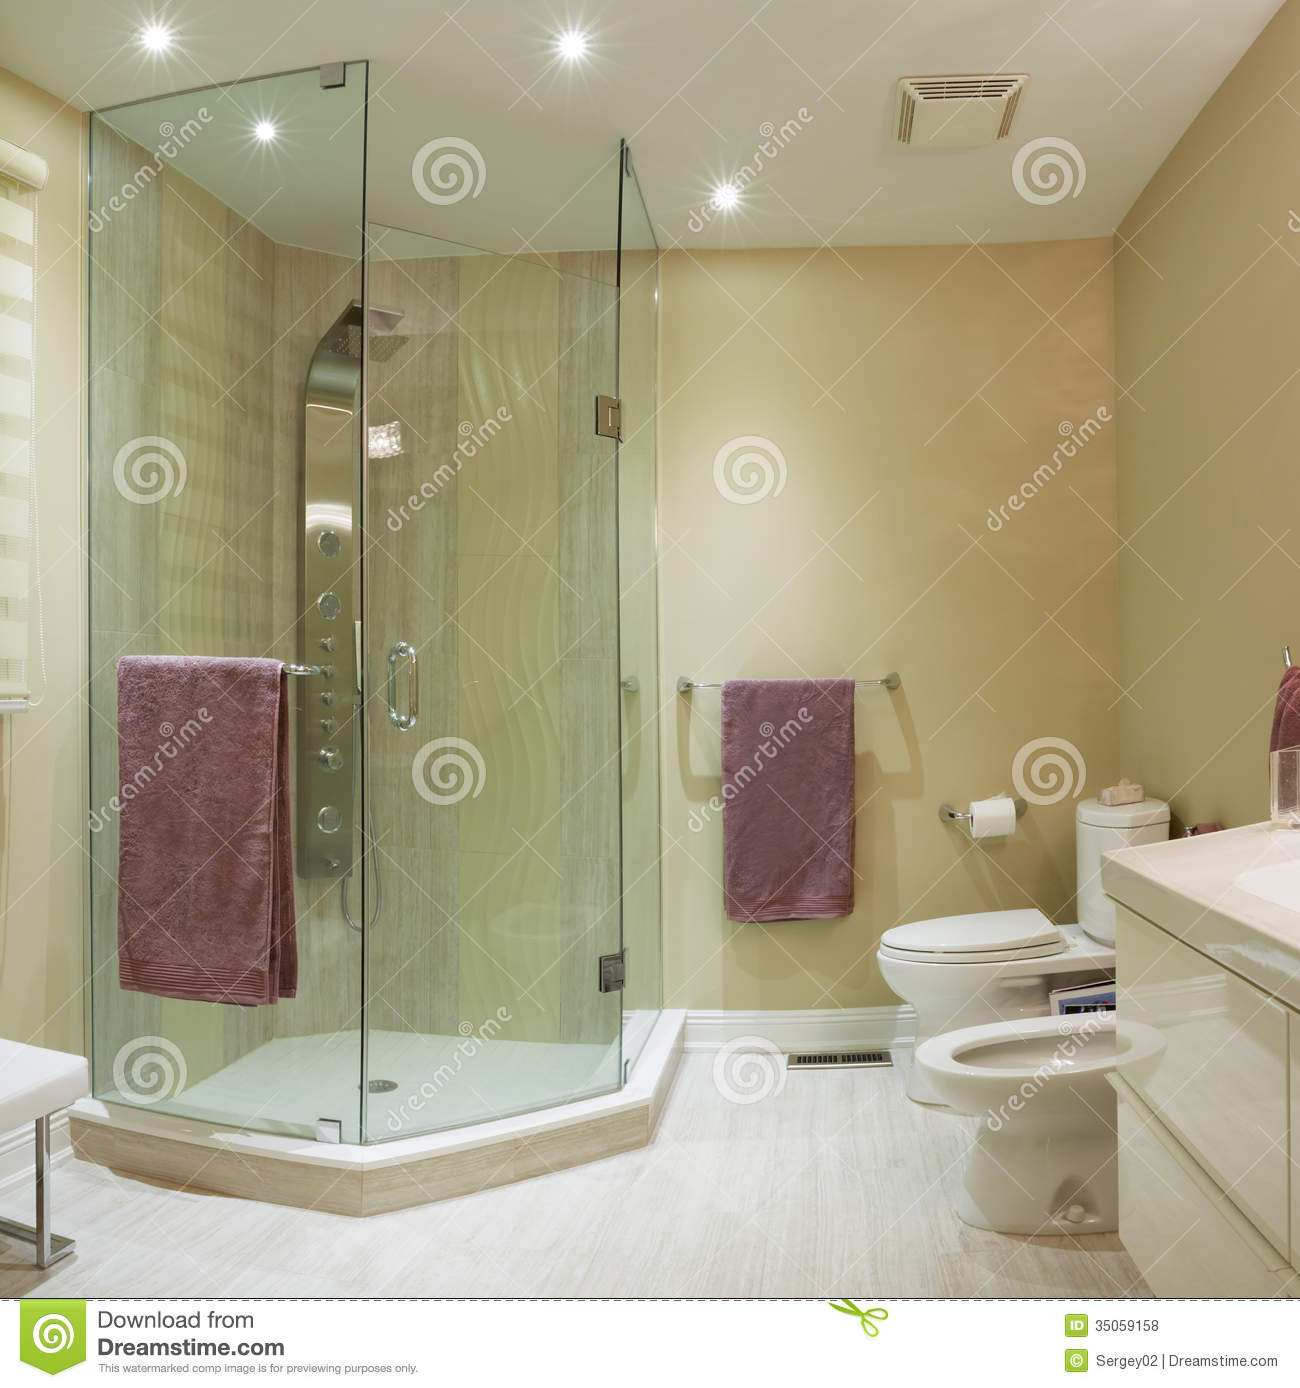 House Bathroom Ideas Of Interior Design Stock Photo Image Of Floor Household